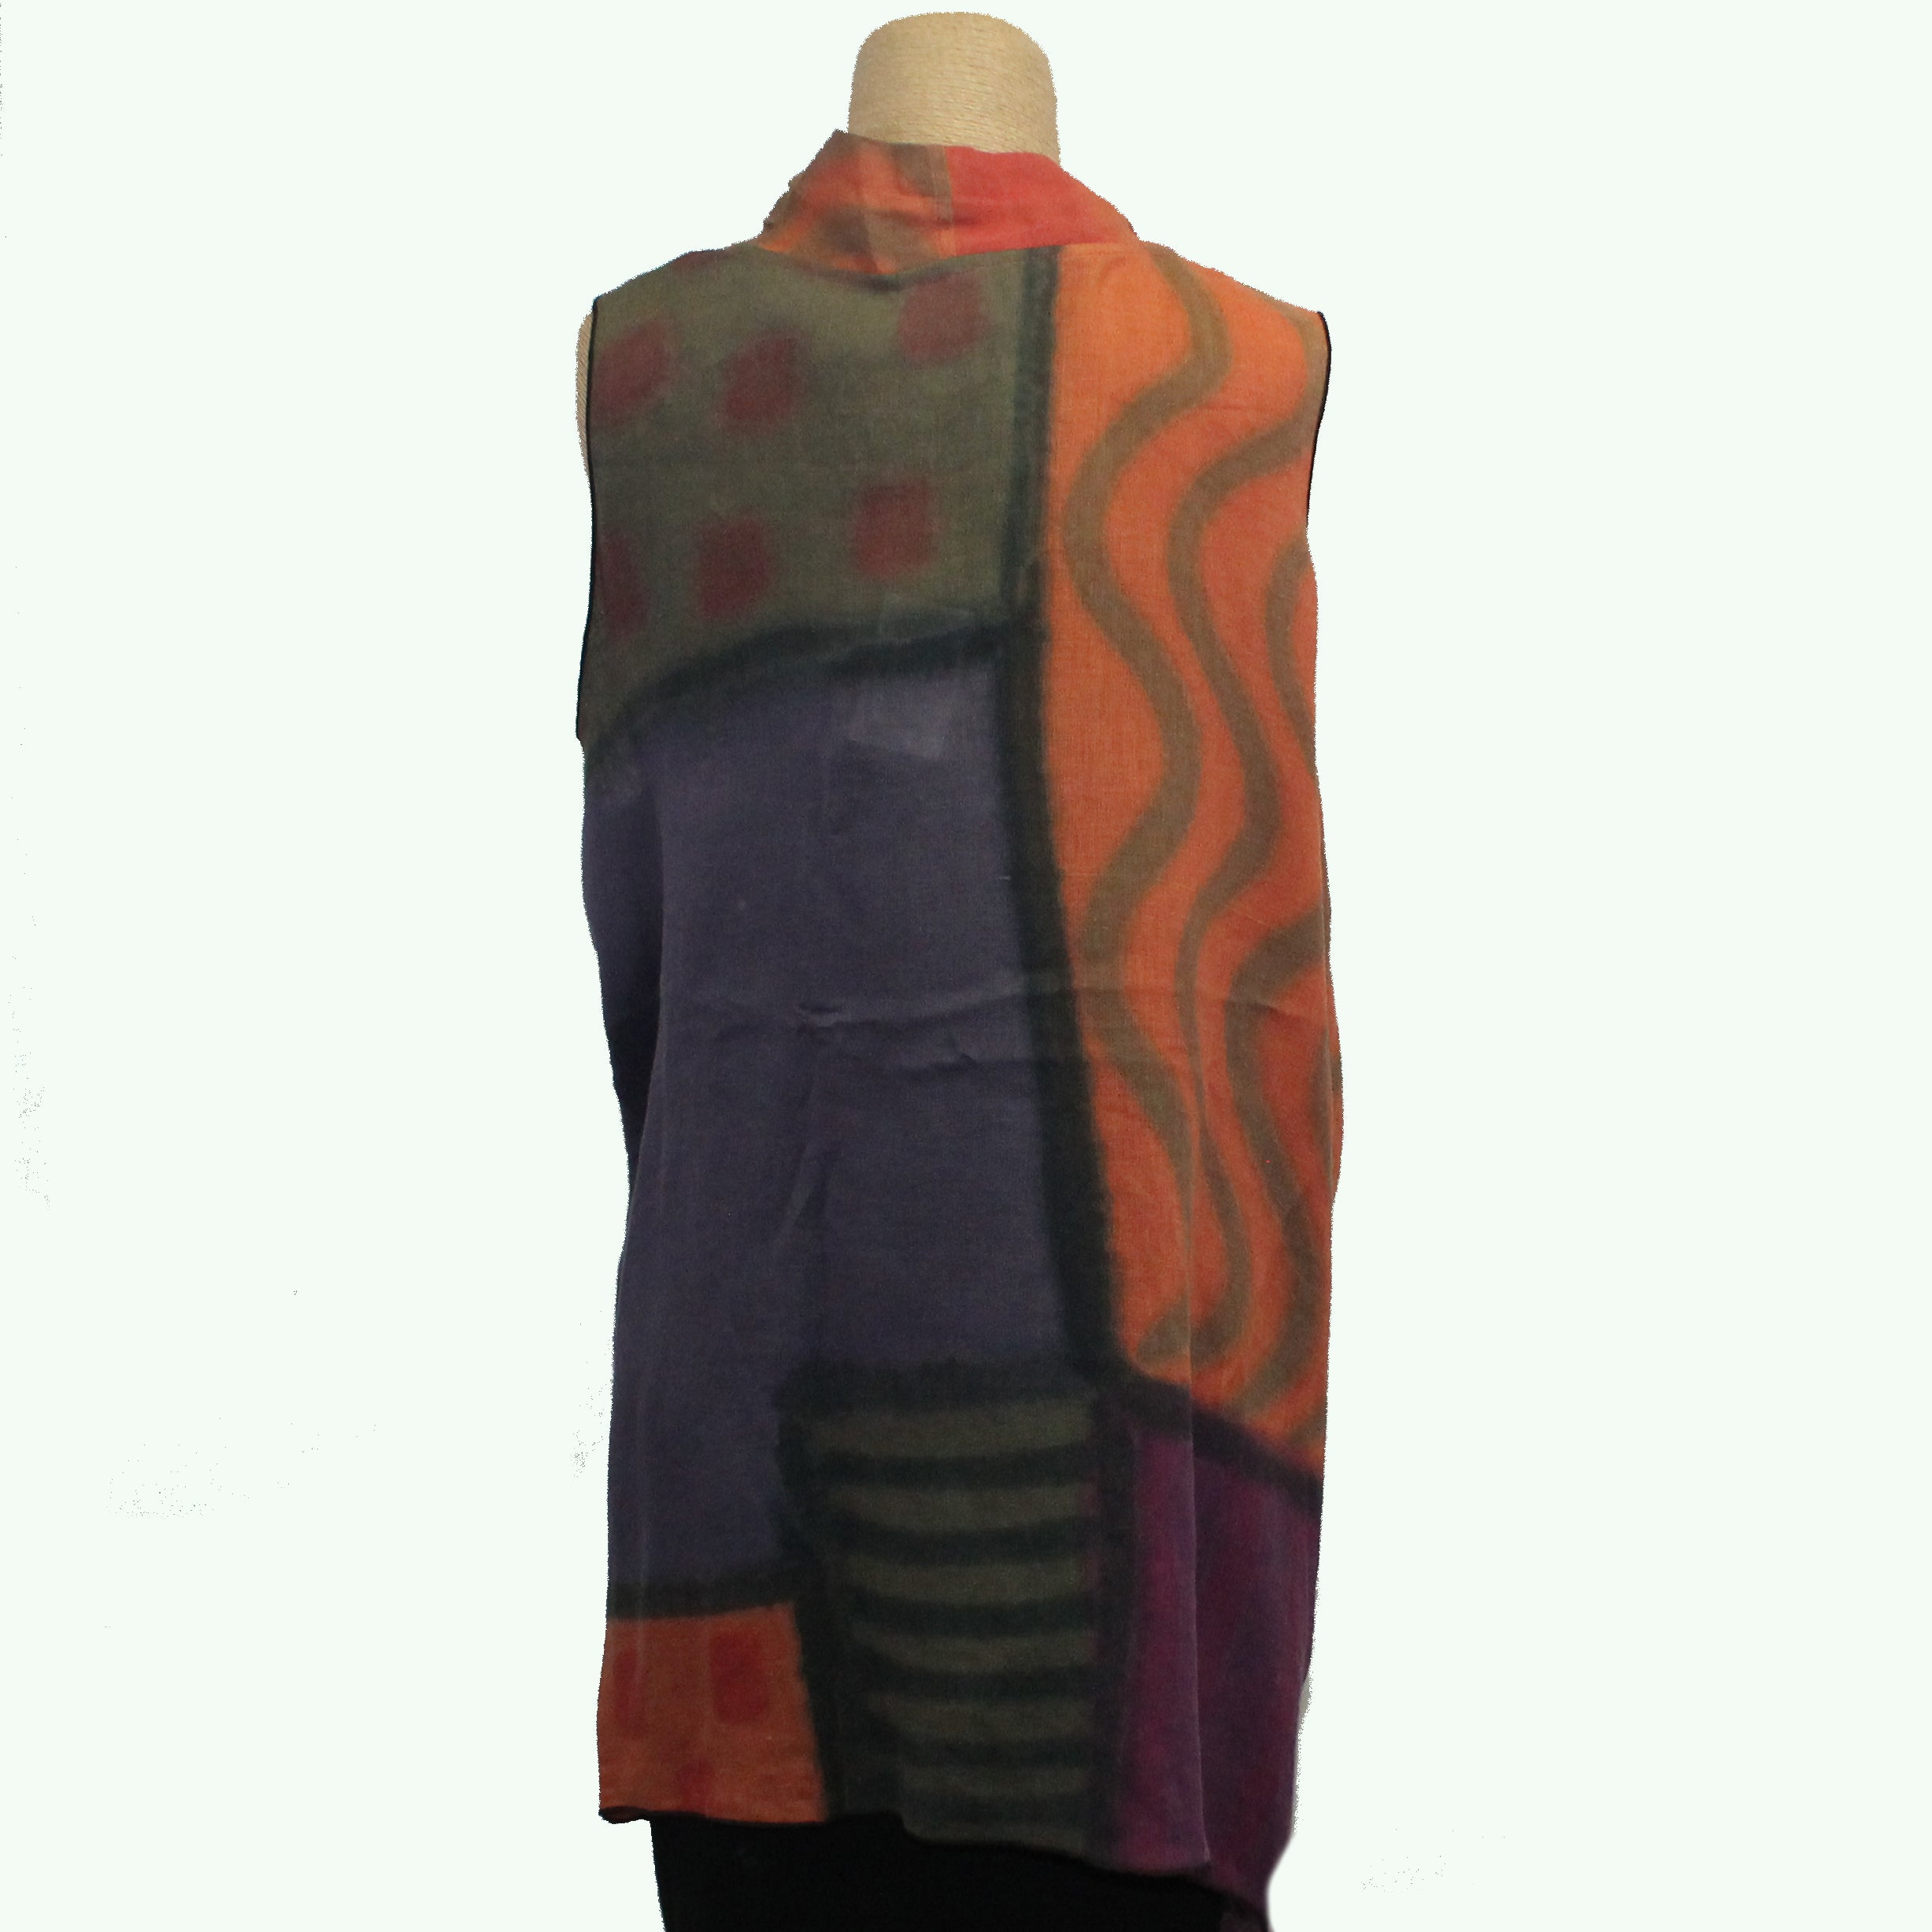 Kay Chapman Vest, Orange/Olive/Purple, Fits M-XL